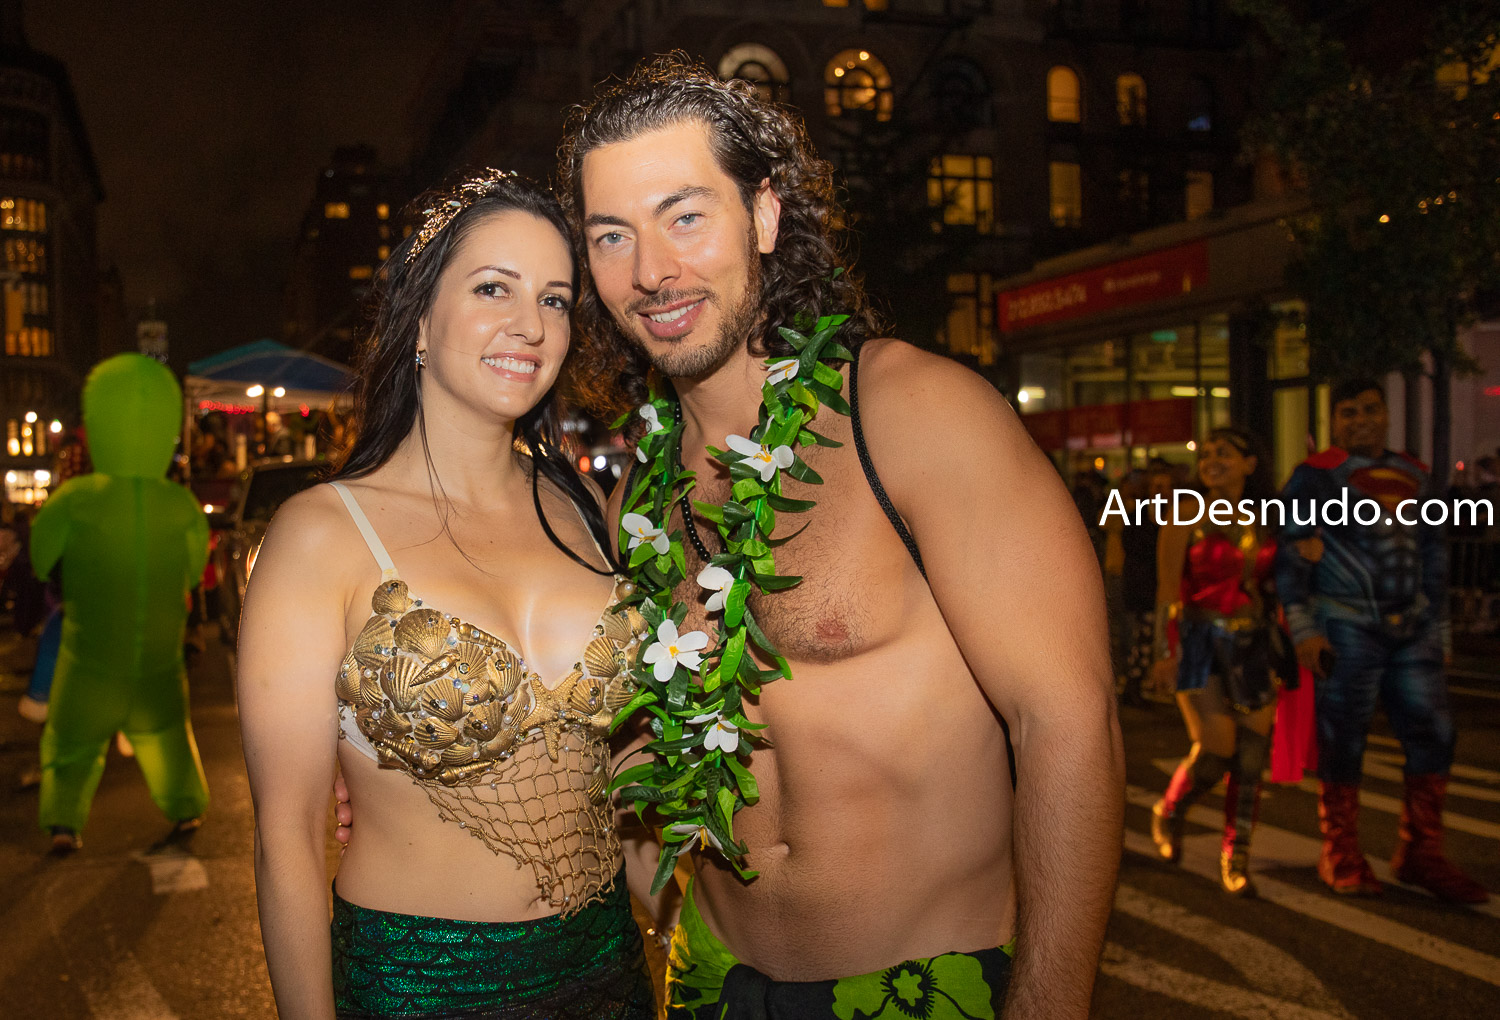 Thursday, October 31, 2019. Manhattan, New York City - 46th Annual New York City Halloween Parade.